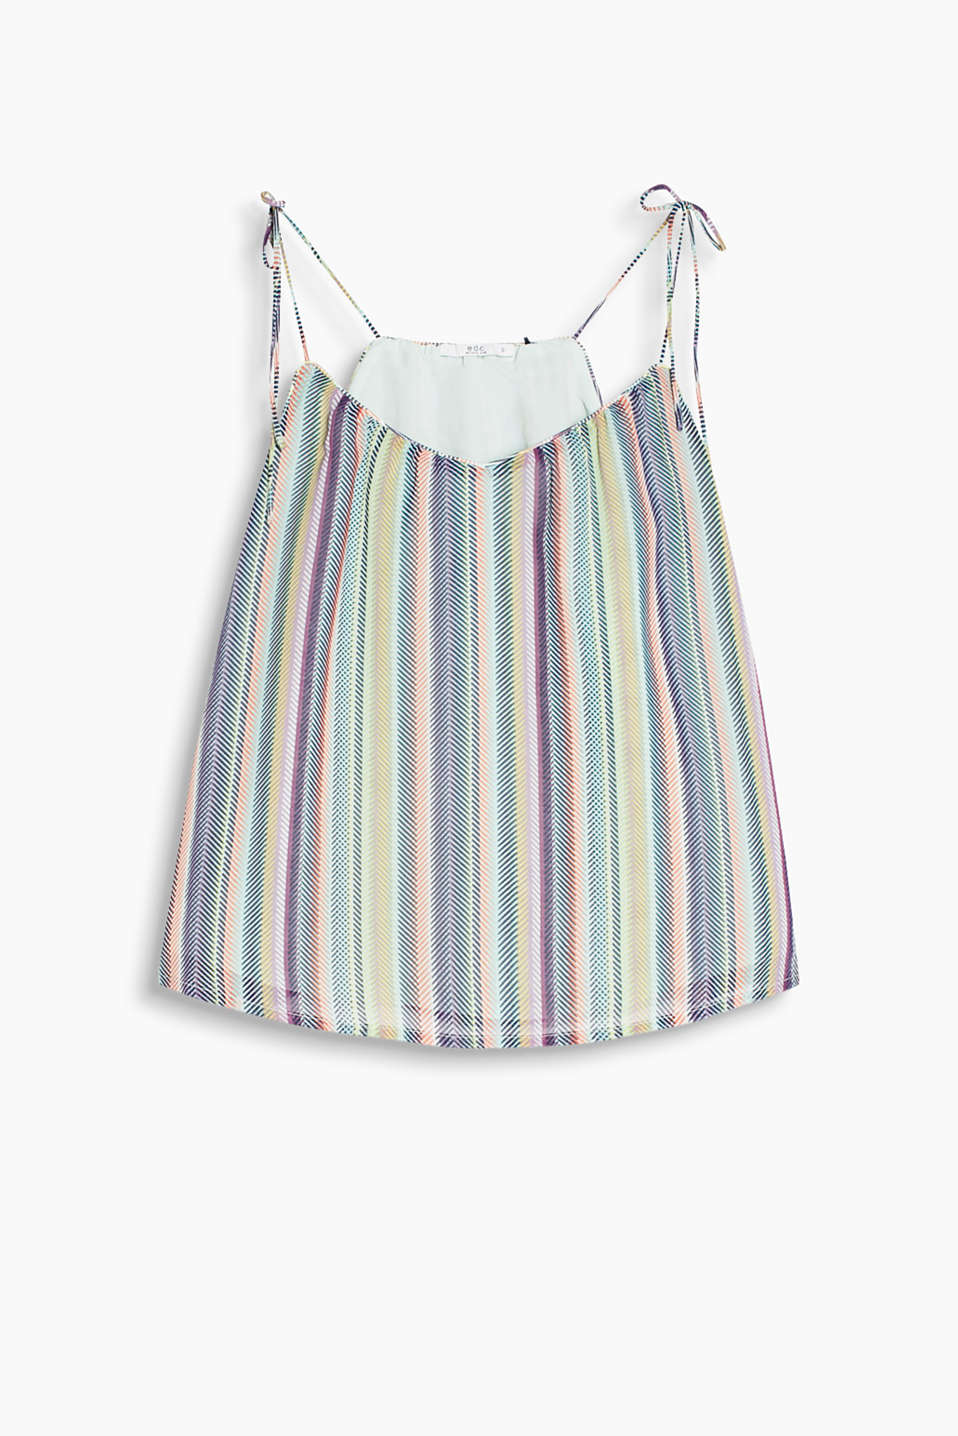 Delicate spaghetti strap top with multicoloured stripes and dainty ties